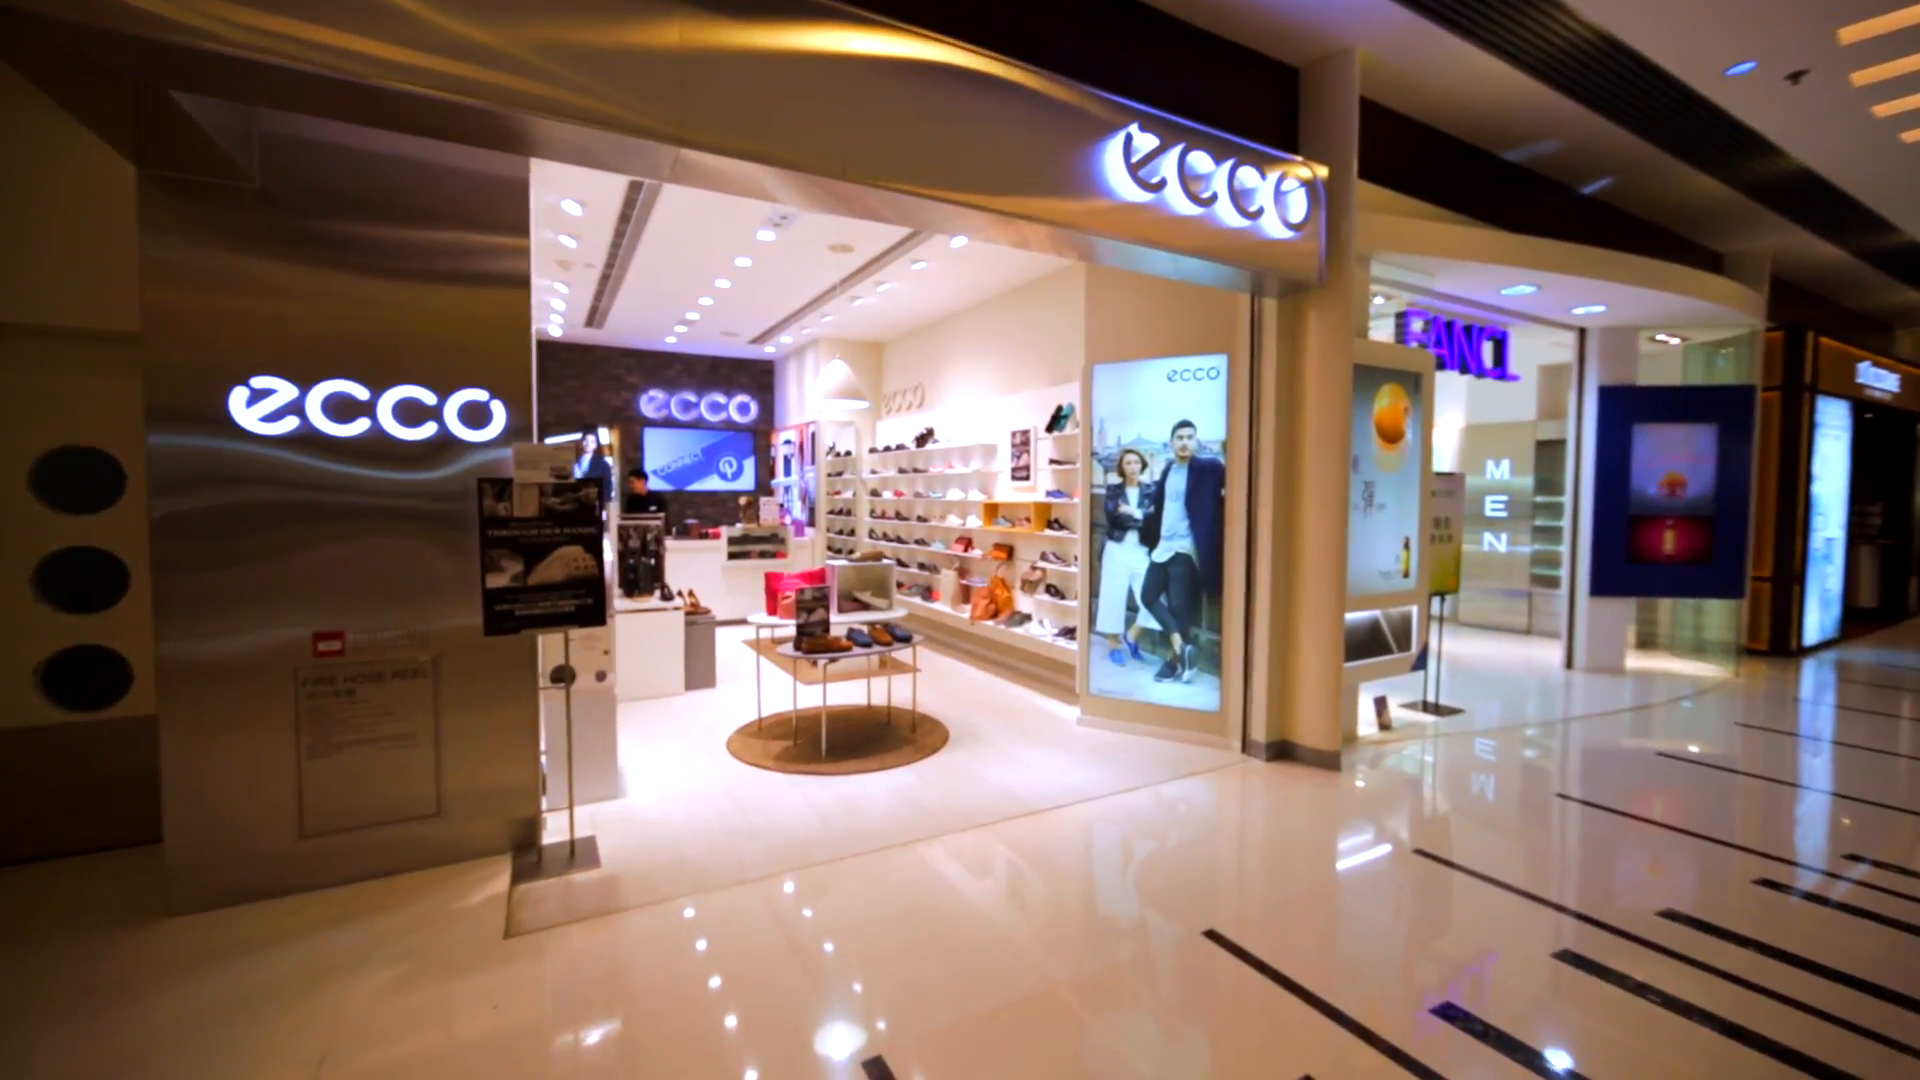 Hong-kong-china-april-2-2016-ecco-store-in-hong-kong-malla-danish-shoe-manufacturer-and-retailer-1963-the-company-produces-the-footwear-accessories-and-small-leather-goods_rbrtnemo__f0000